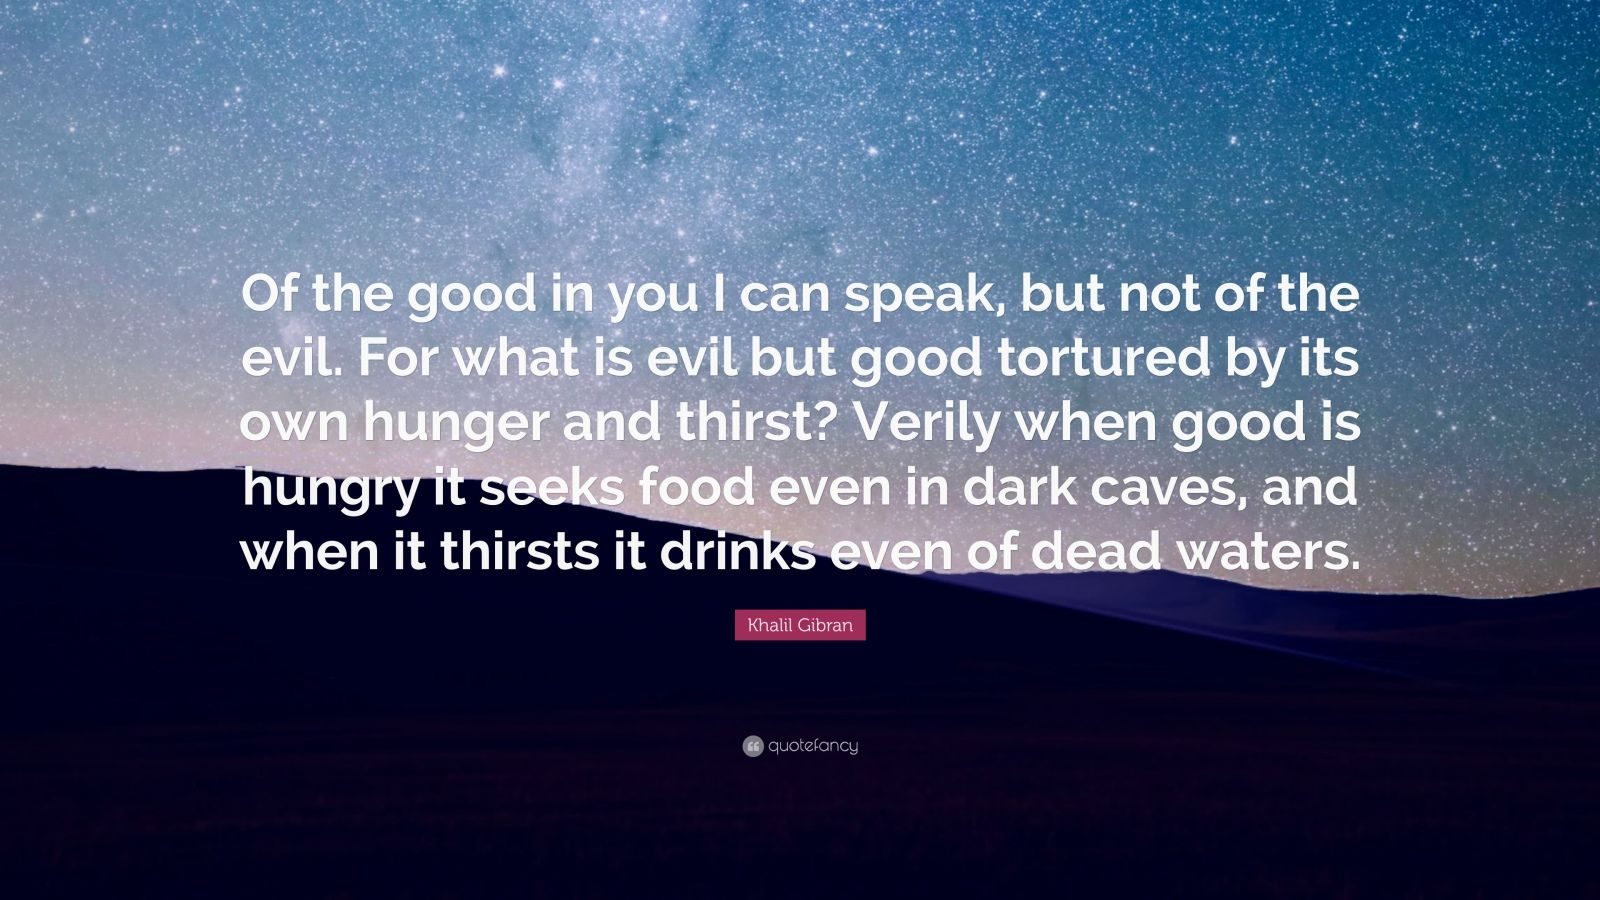 "Khalil Gibran Quote: ""Of the good in you I can speak, but not of the evil. For what is evil but good tortured by its own hunger and thirst? Verily when good is hungry it seeks food even in dark caves, and when it thirsts it drinks even of dead waters."""